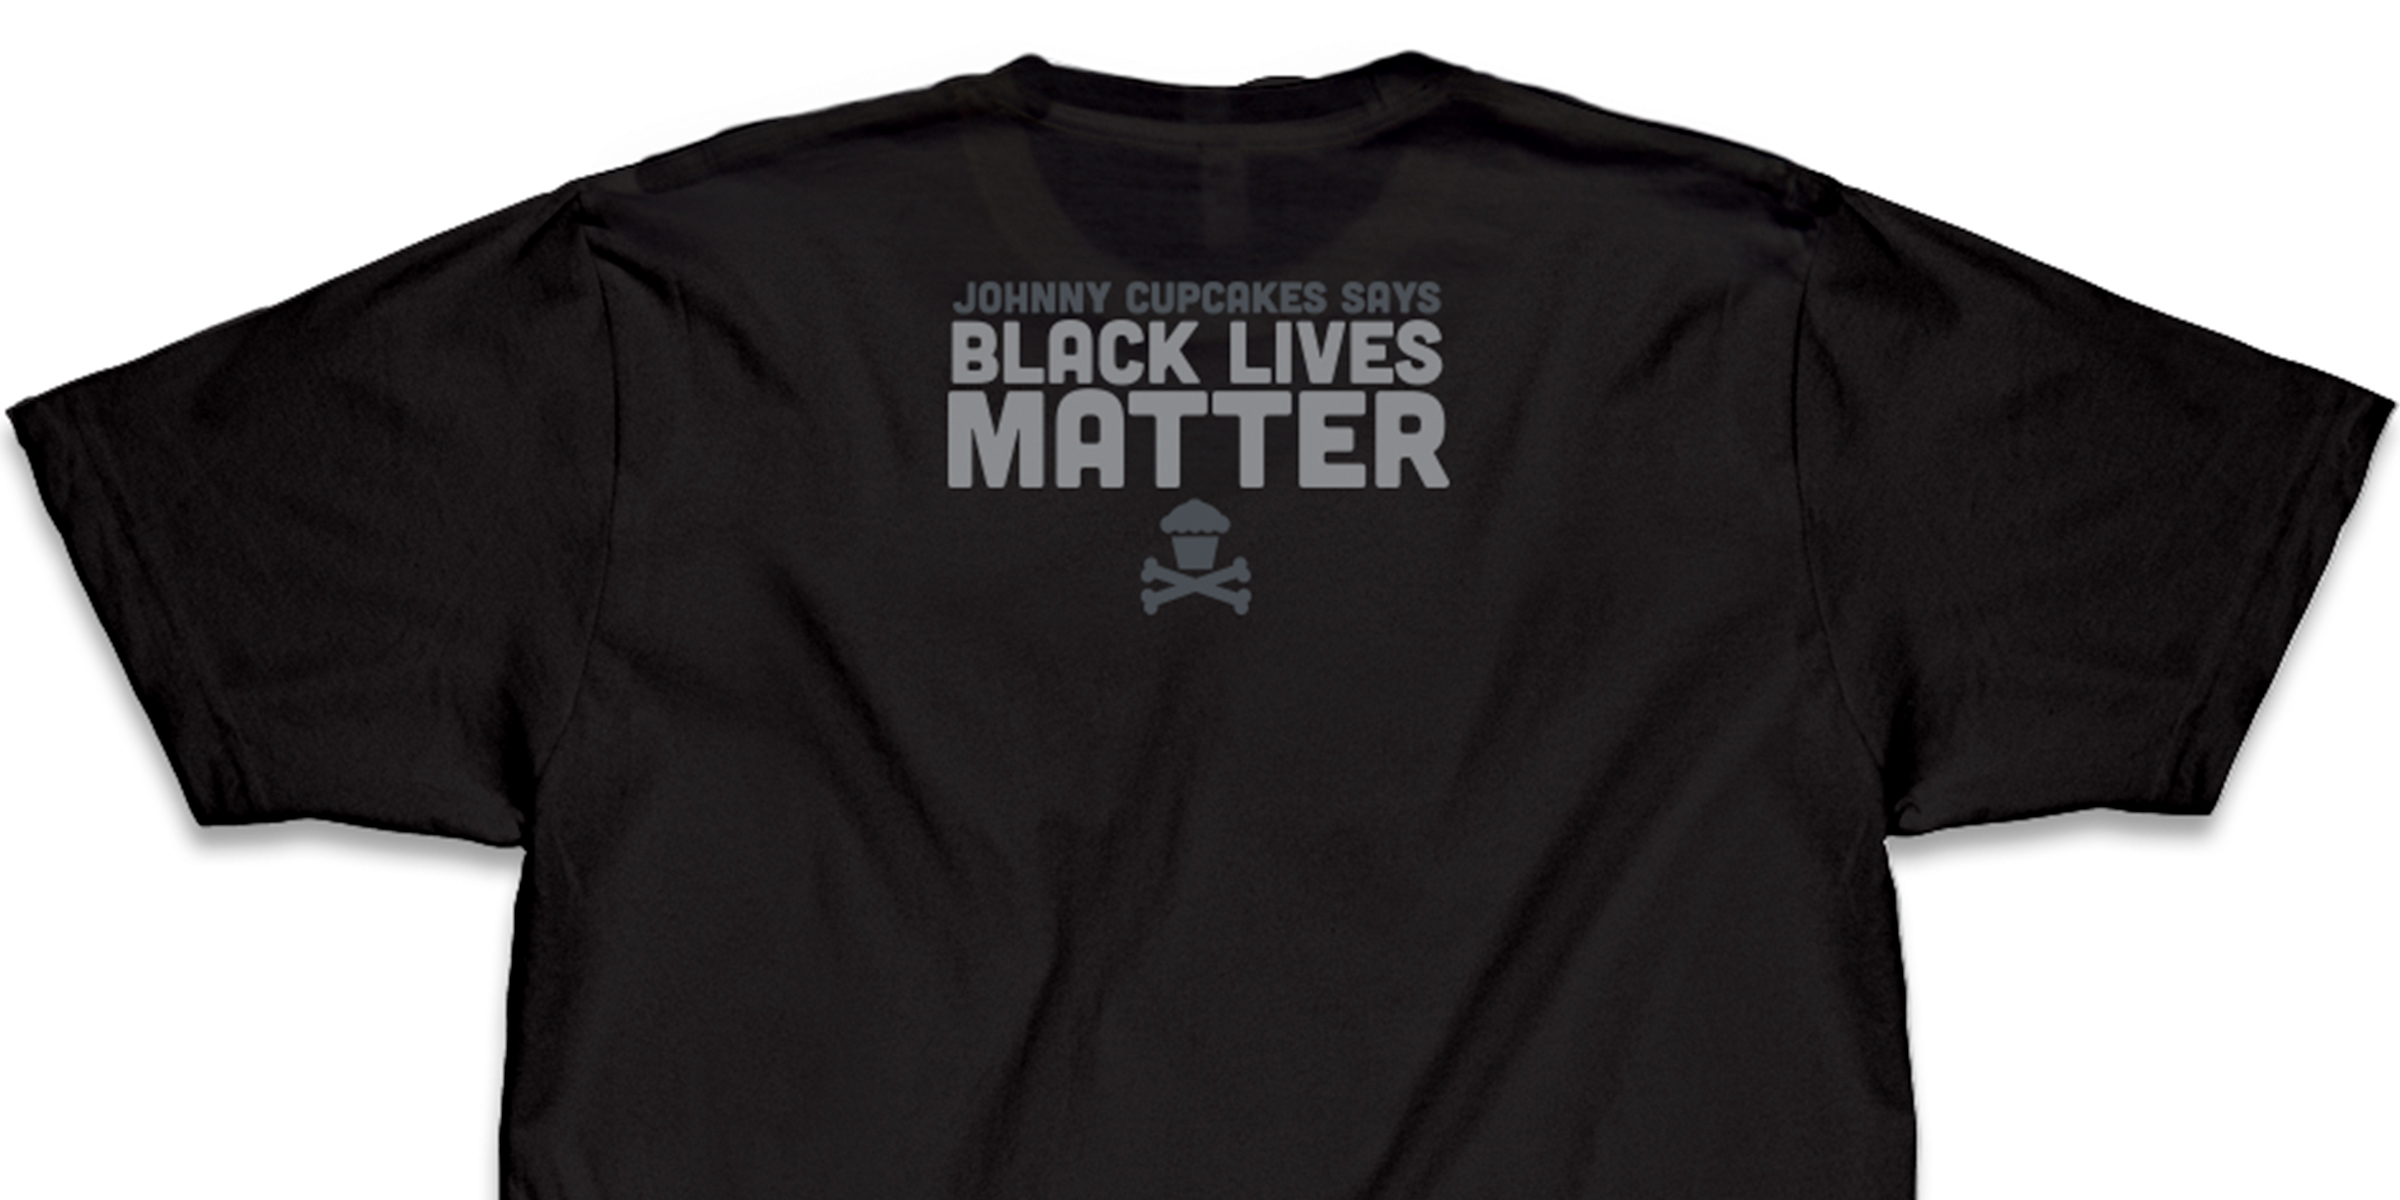 Johnny Cupcakes Says Black Lives Matter